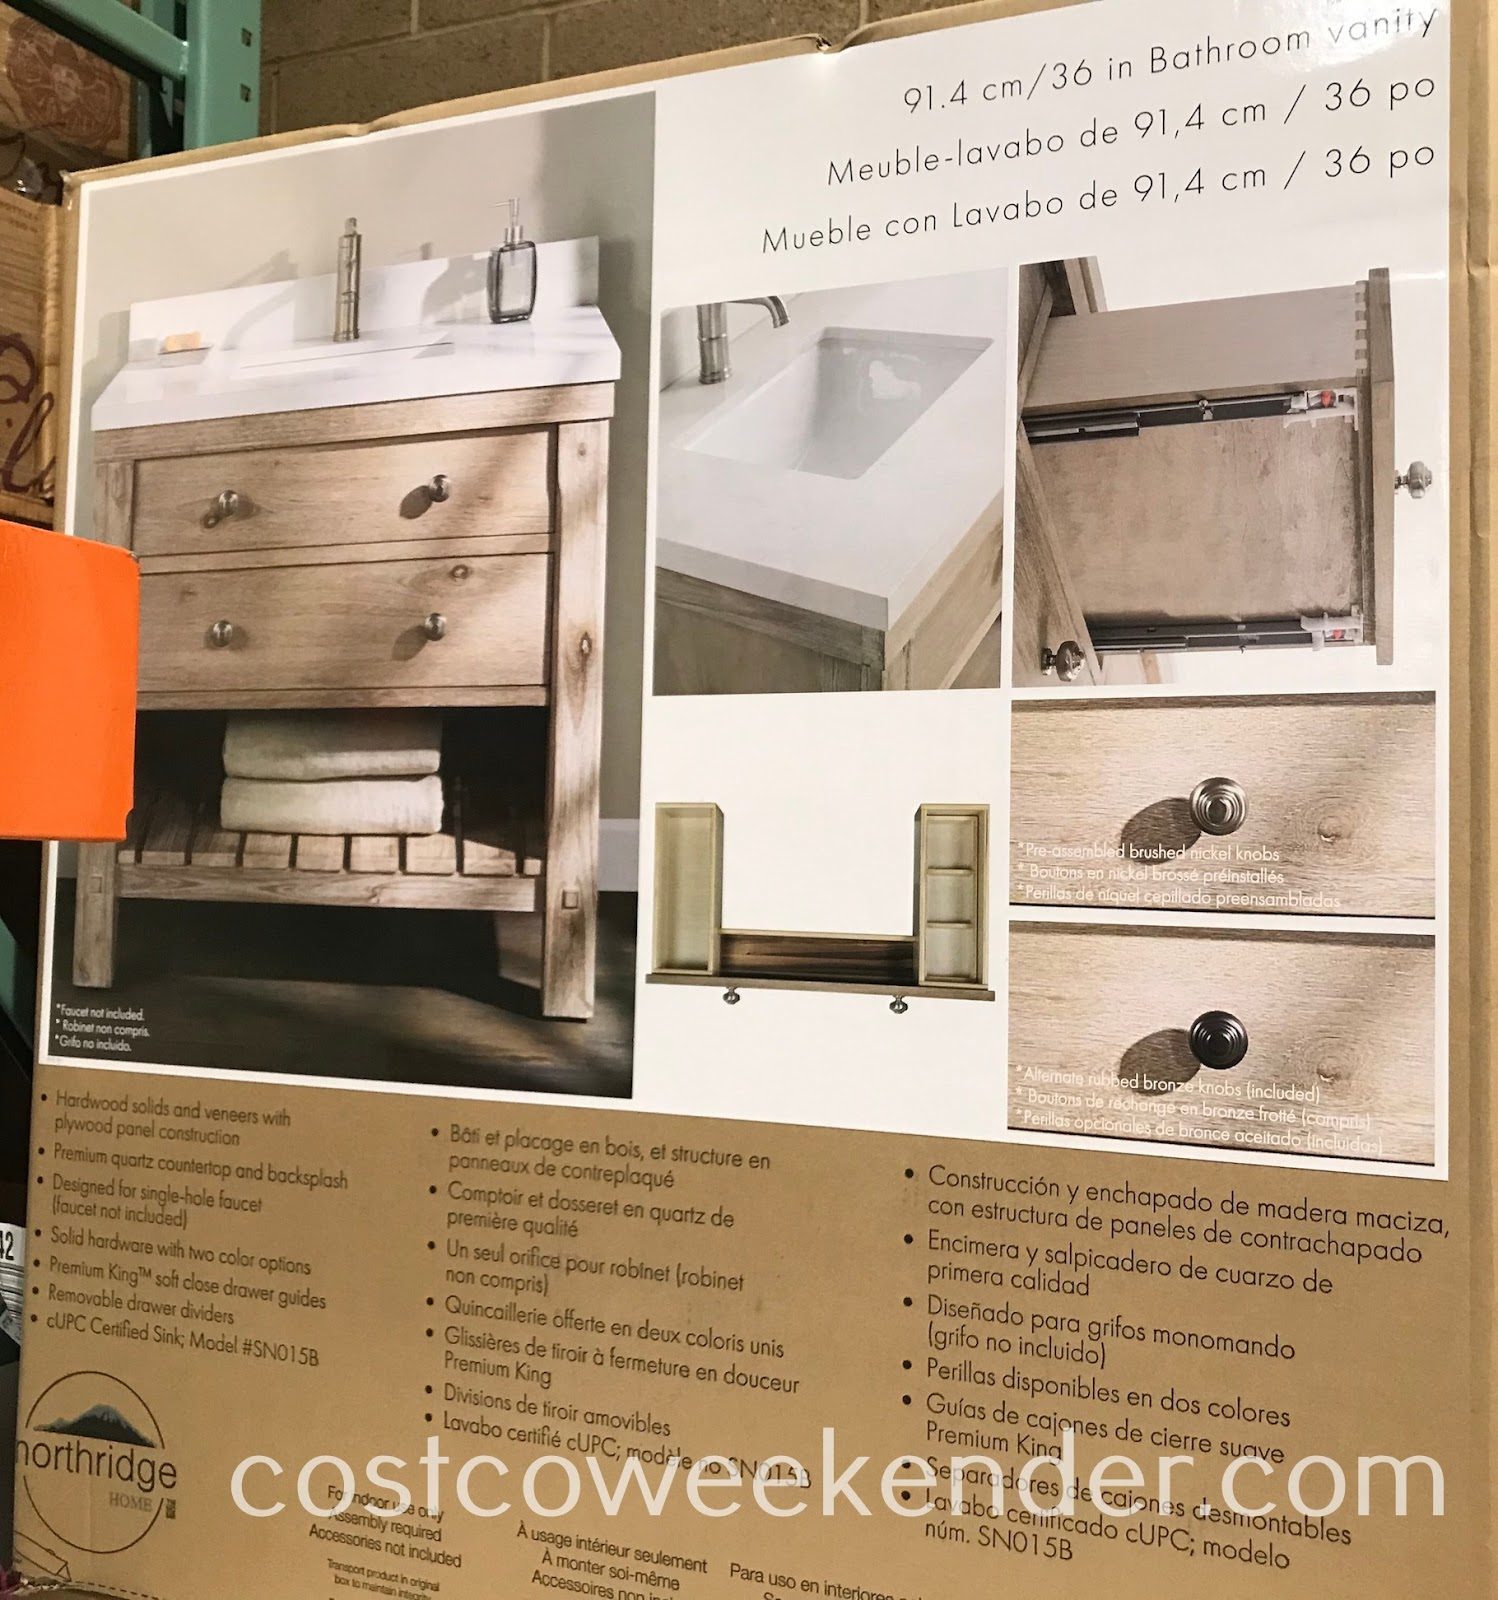 Costco 1273980 - Northridge Home Rustic Bathroom Vanity: great for any bathroom